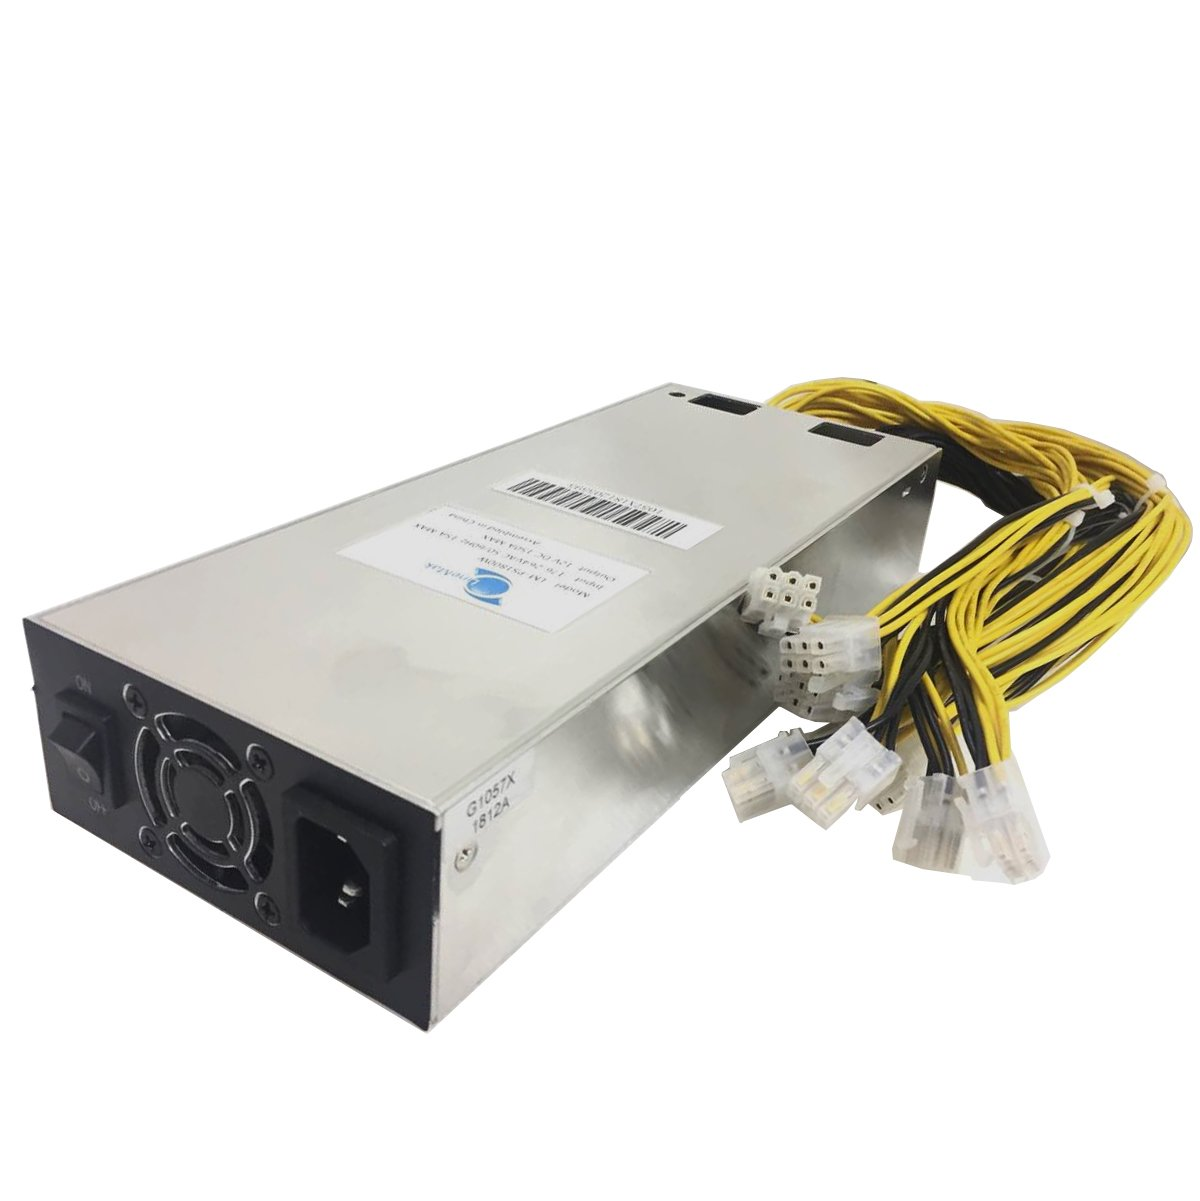 Cheap Low Power Psu Find Deals On Line At Alibabacom Antec Atx12v Supply Tester Get Quotations Linemak Antminer Apw3 Requires 176v 264v 1800w 50 60hz 15amp Max